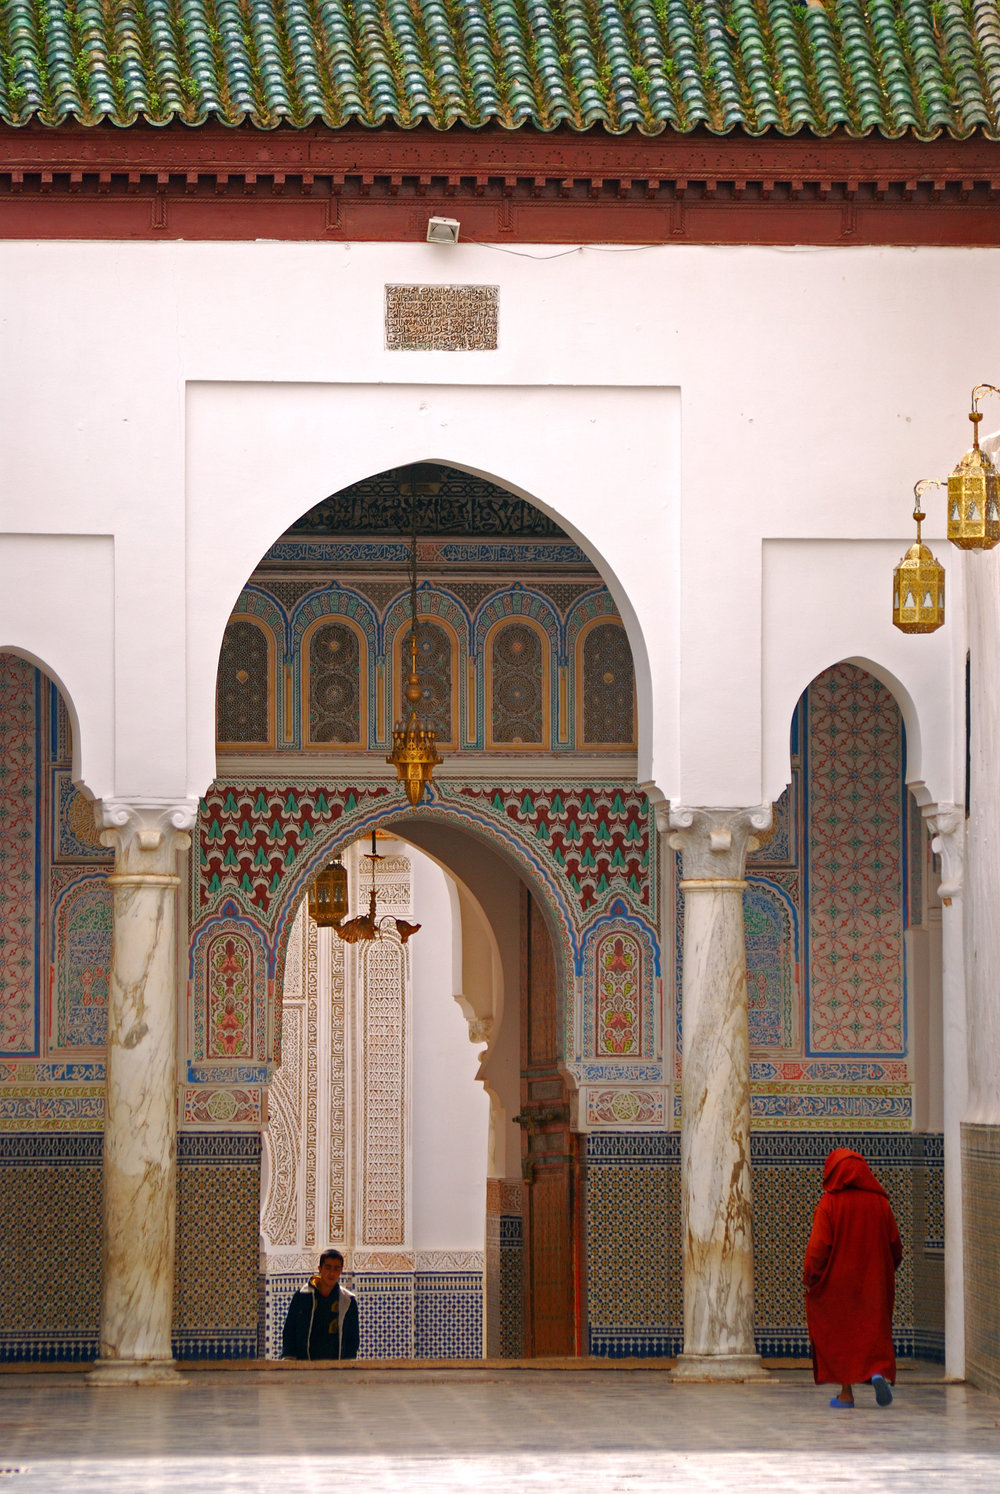 Mausoleum Moulay Idriss 2